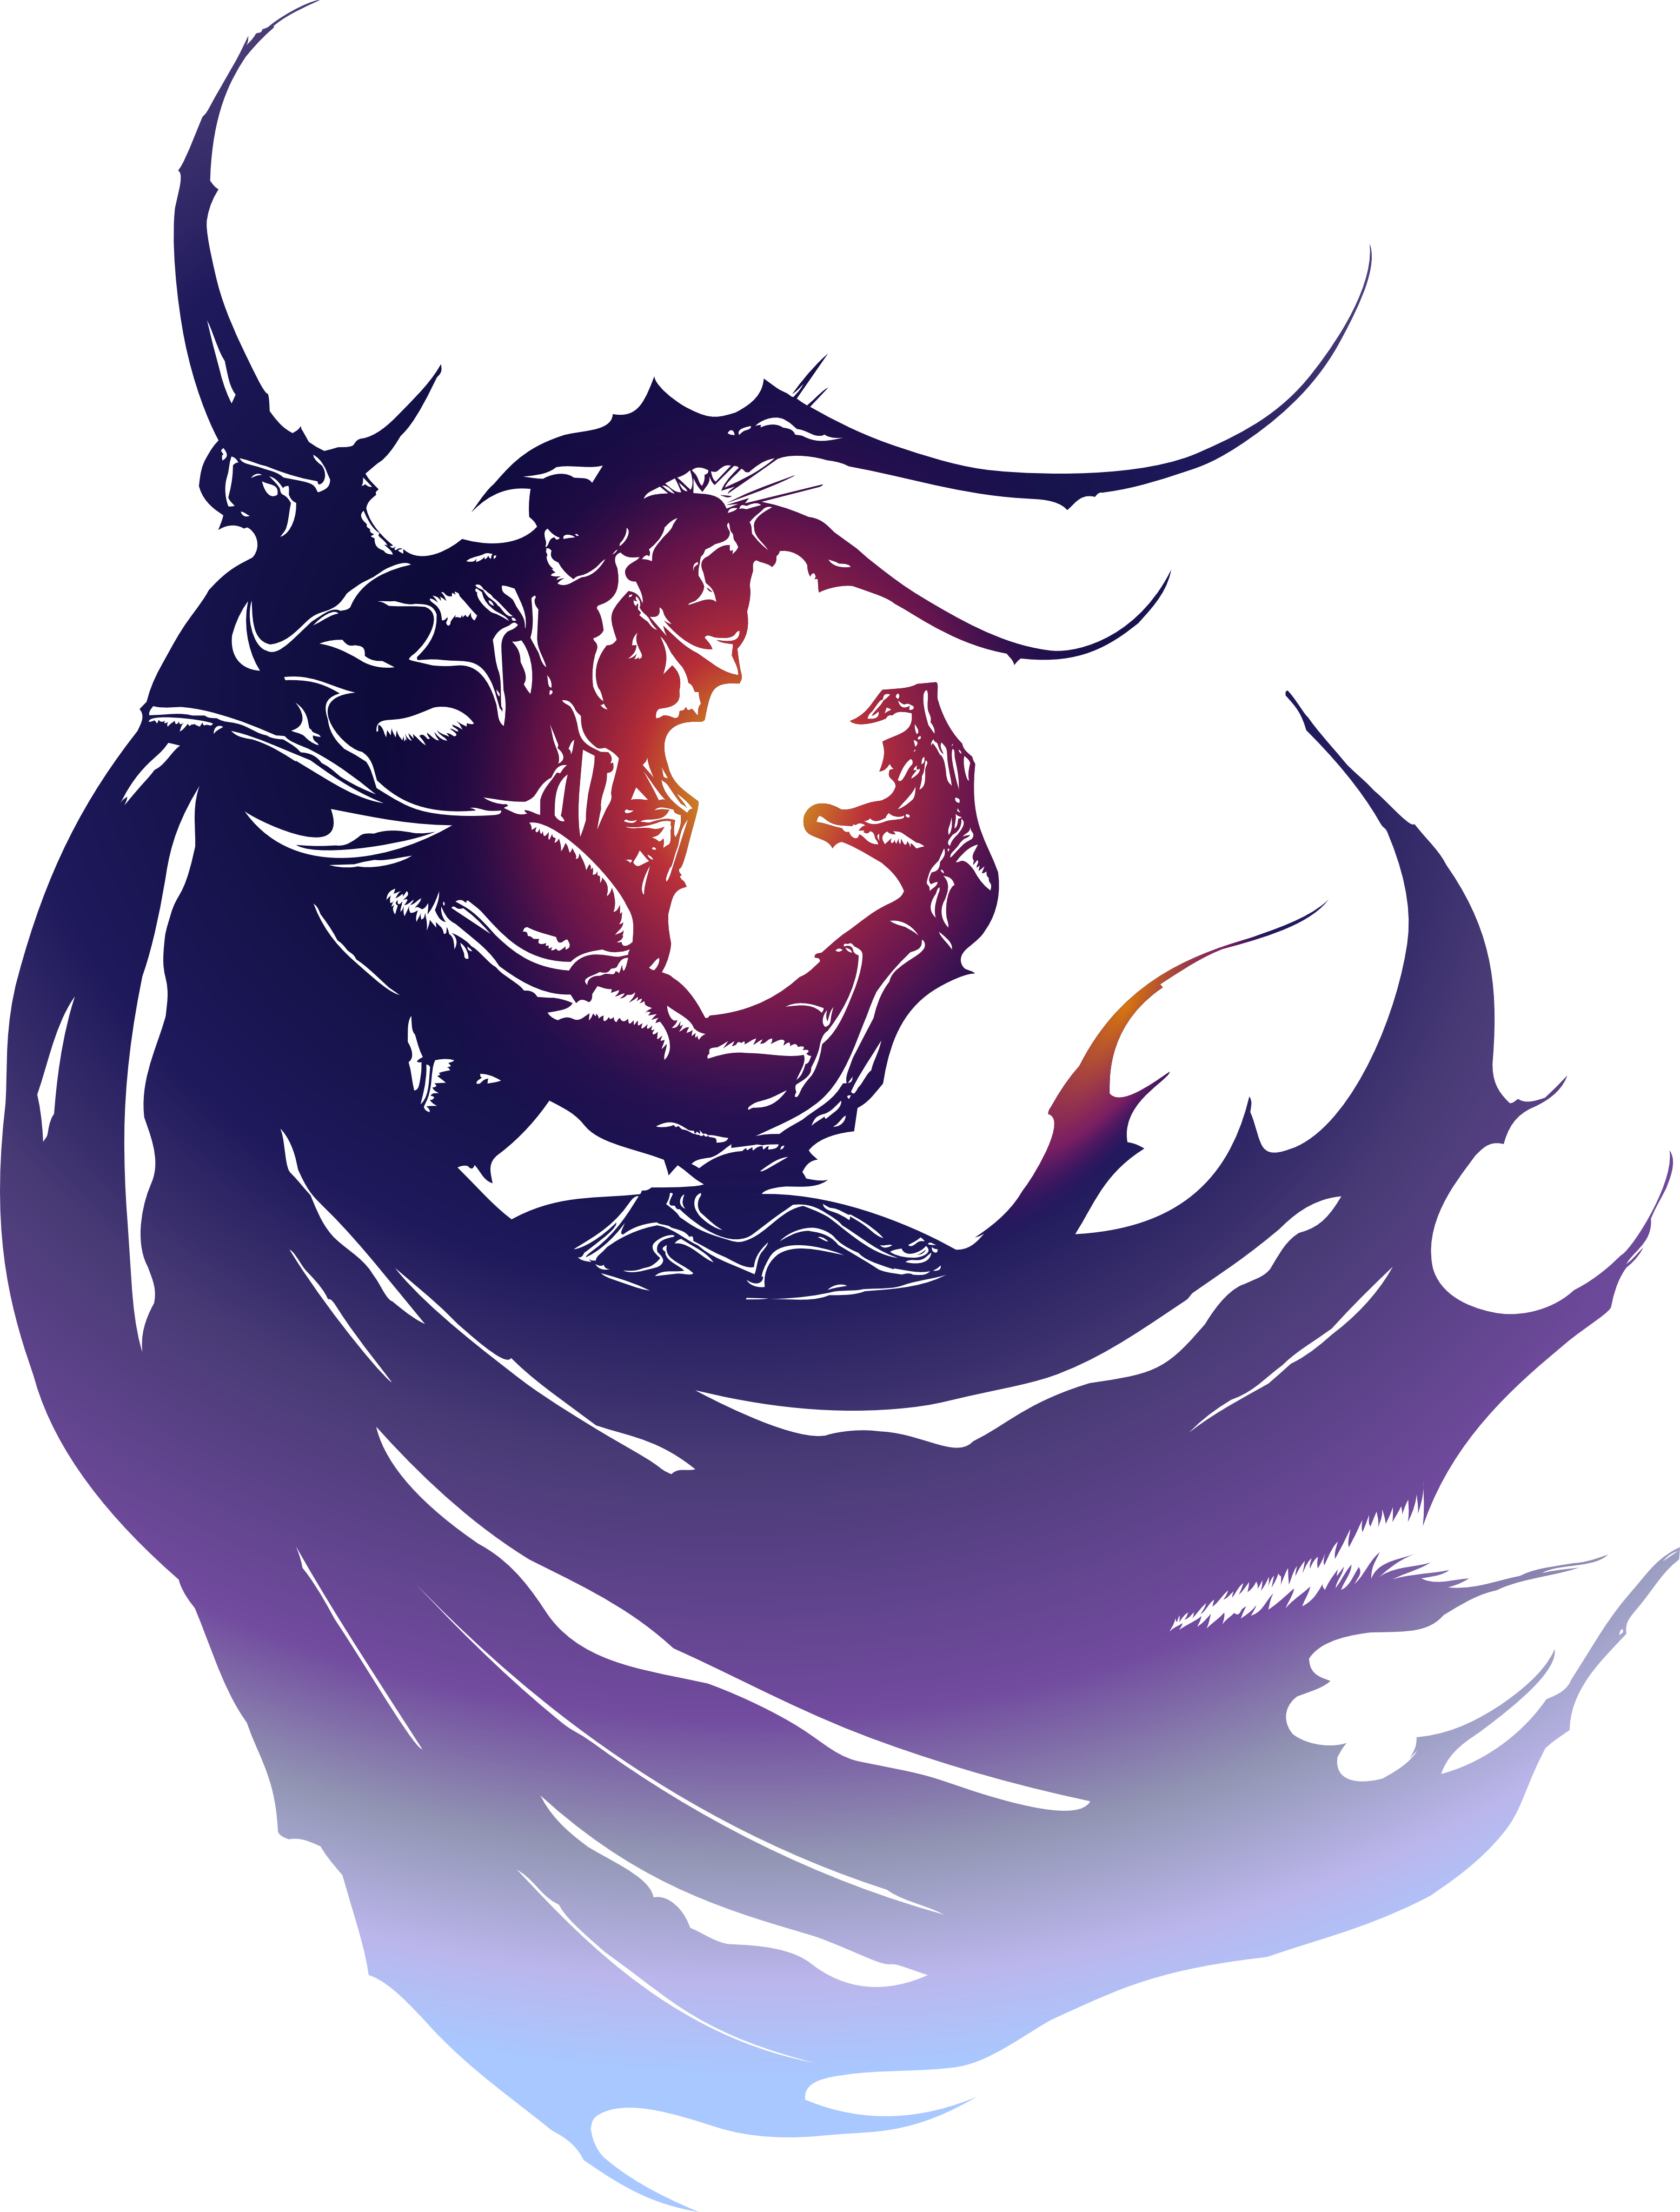 This is the logo for Final Fantasy IV it stands out